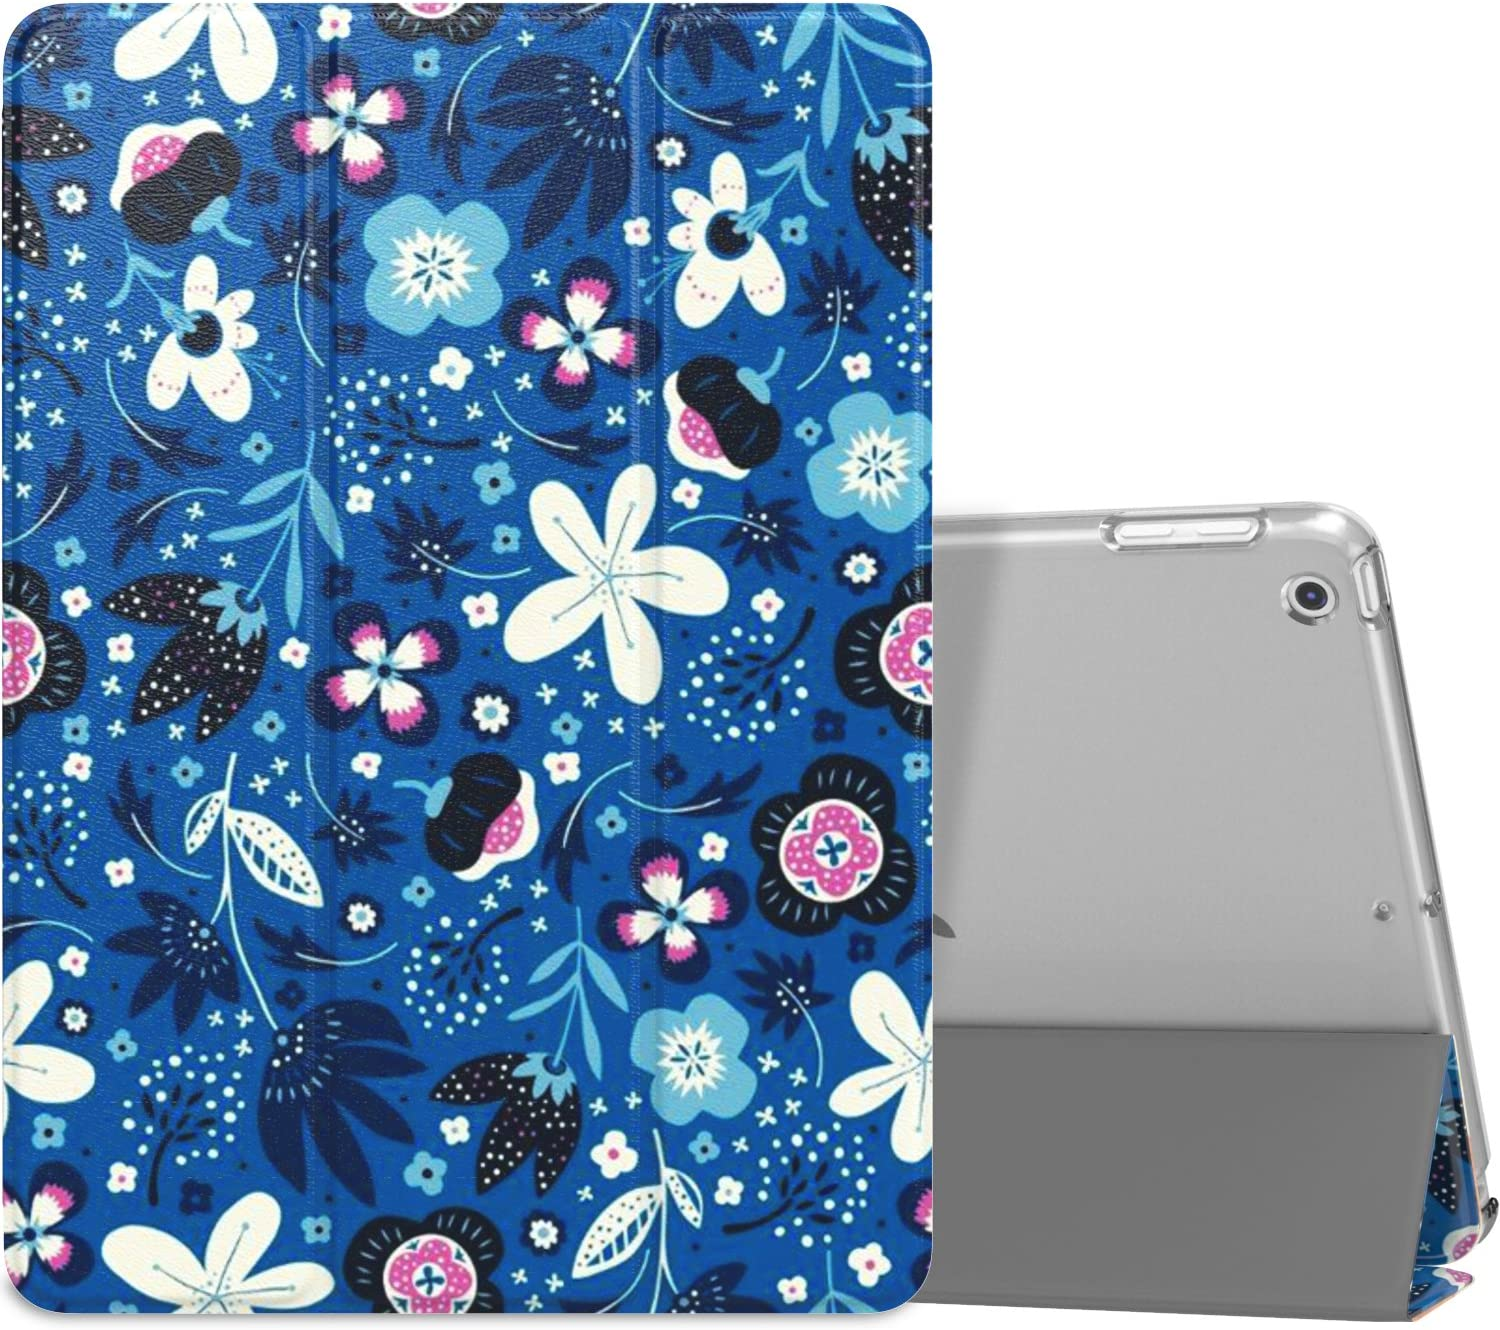 MoKo Case Fit 2018/2017 iPad 9.7 6th/5th Generation - Slim Lightweight Smart Shell Stand Cover with Translucent Frosted Back Protector Fit iPad 9.7 Inch 2018/2017, Blue Flowers(Auto Wake/Sleep)